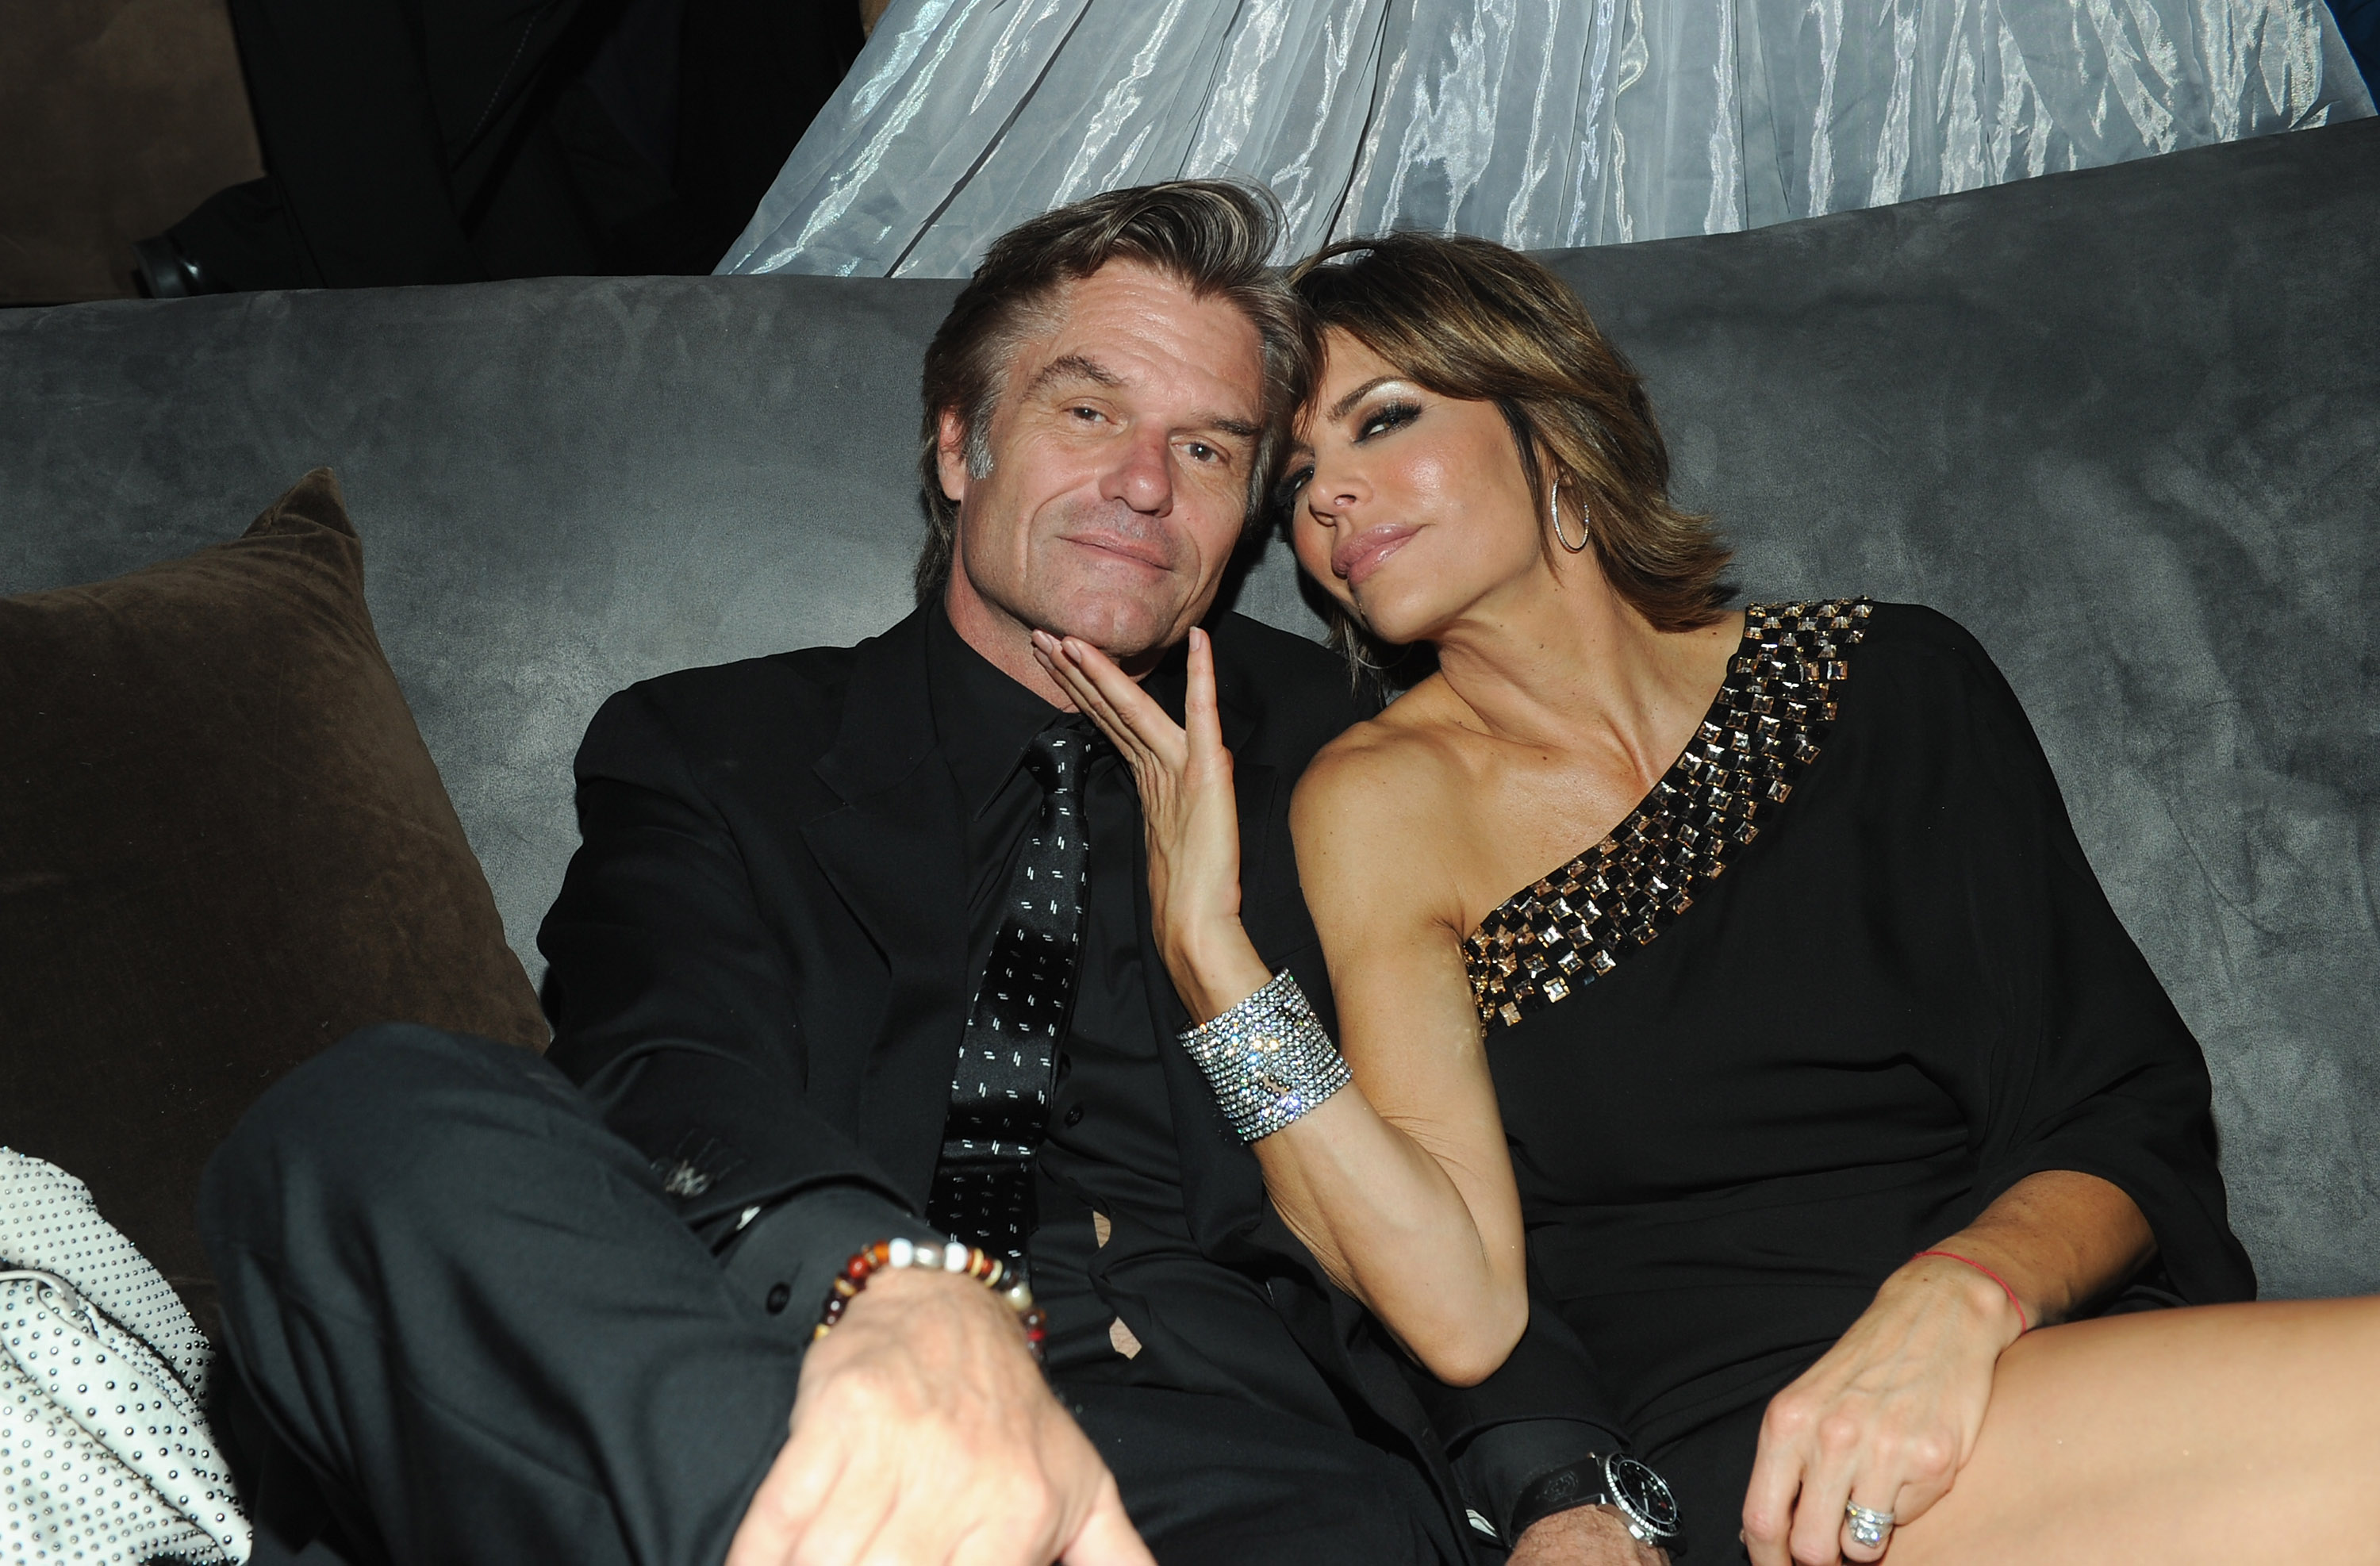 Actor Harry Hamlin and actress Lisa Rinna attend ABC's 'Dancing With The Stars' 200th episode party on November 1, 2010, in Los Angeles, California. (Getty Images)